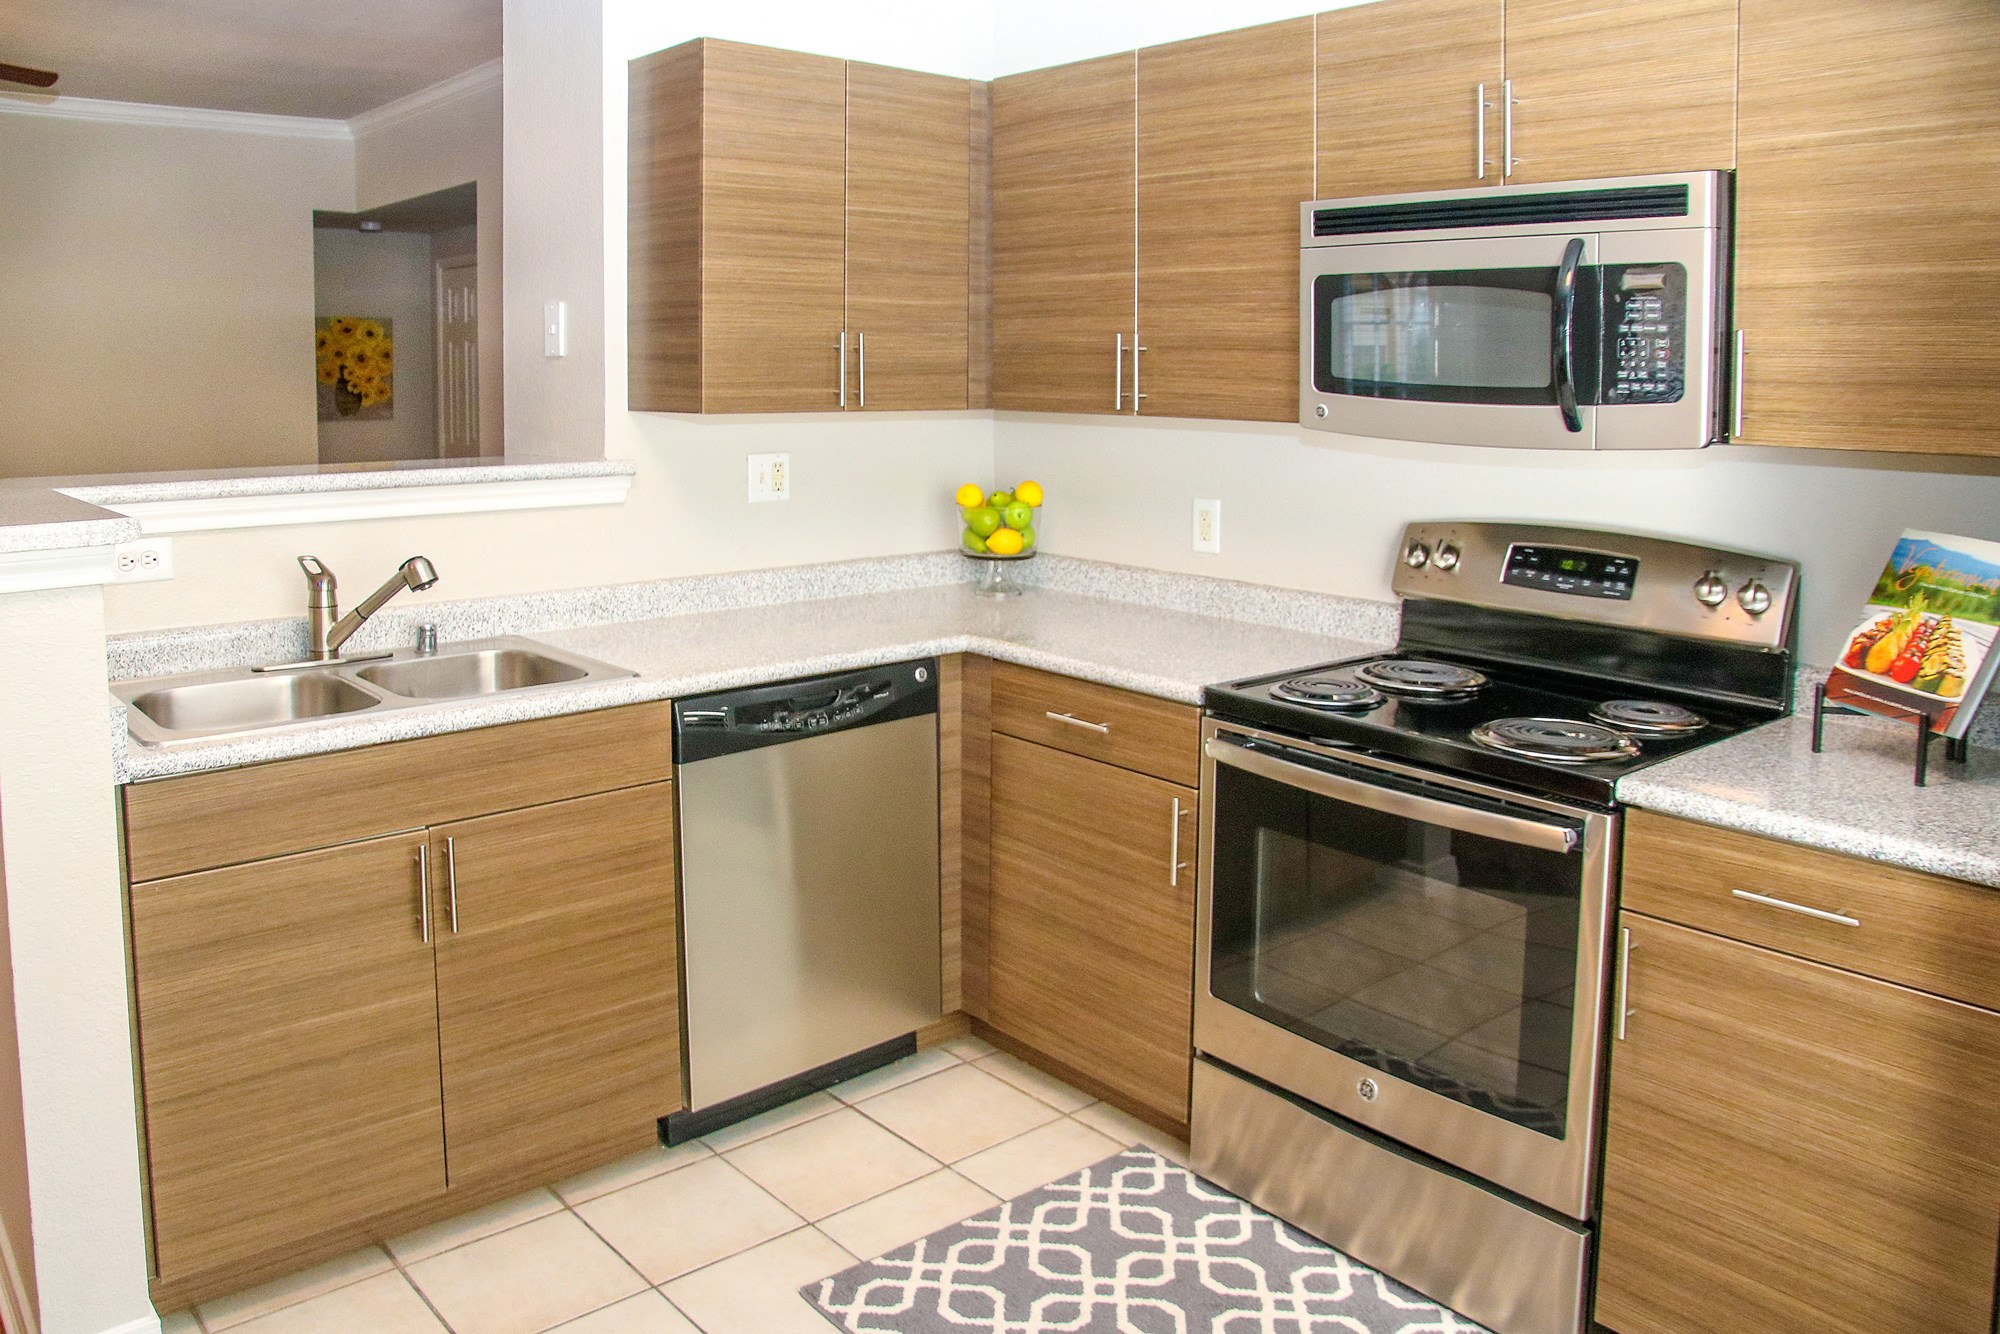 Deluxe Kitchen at 7900 at Park Central Apartments in Dallas, TX